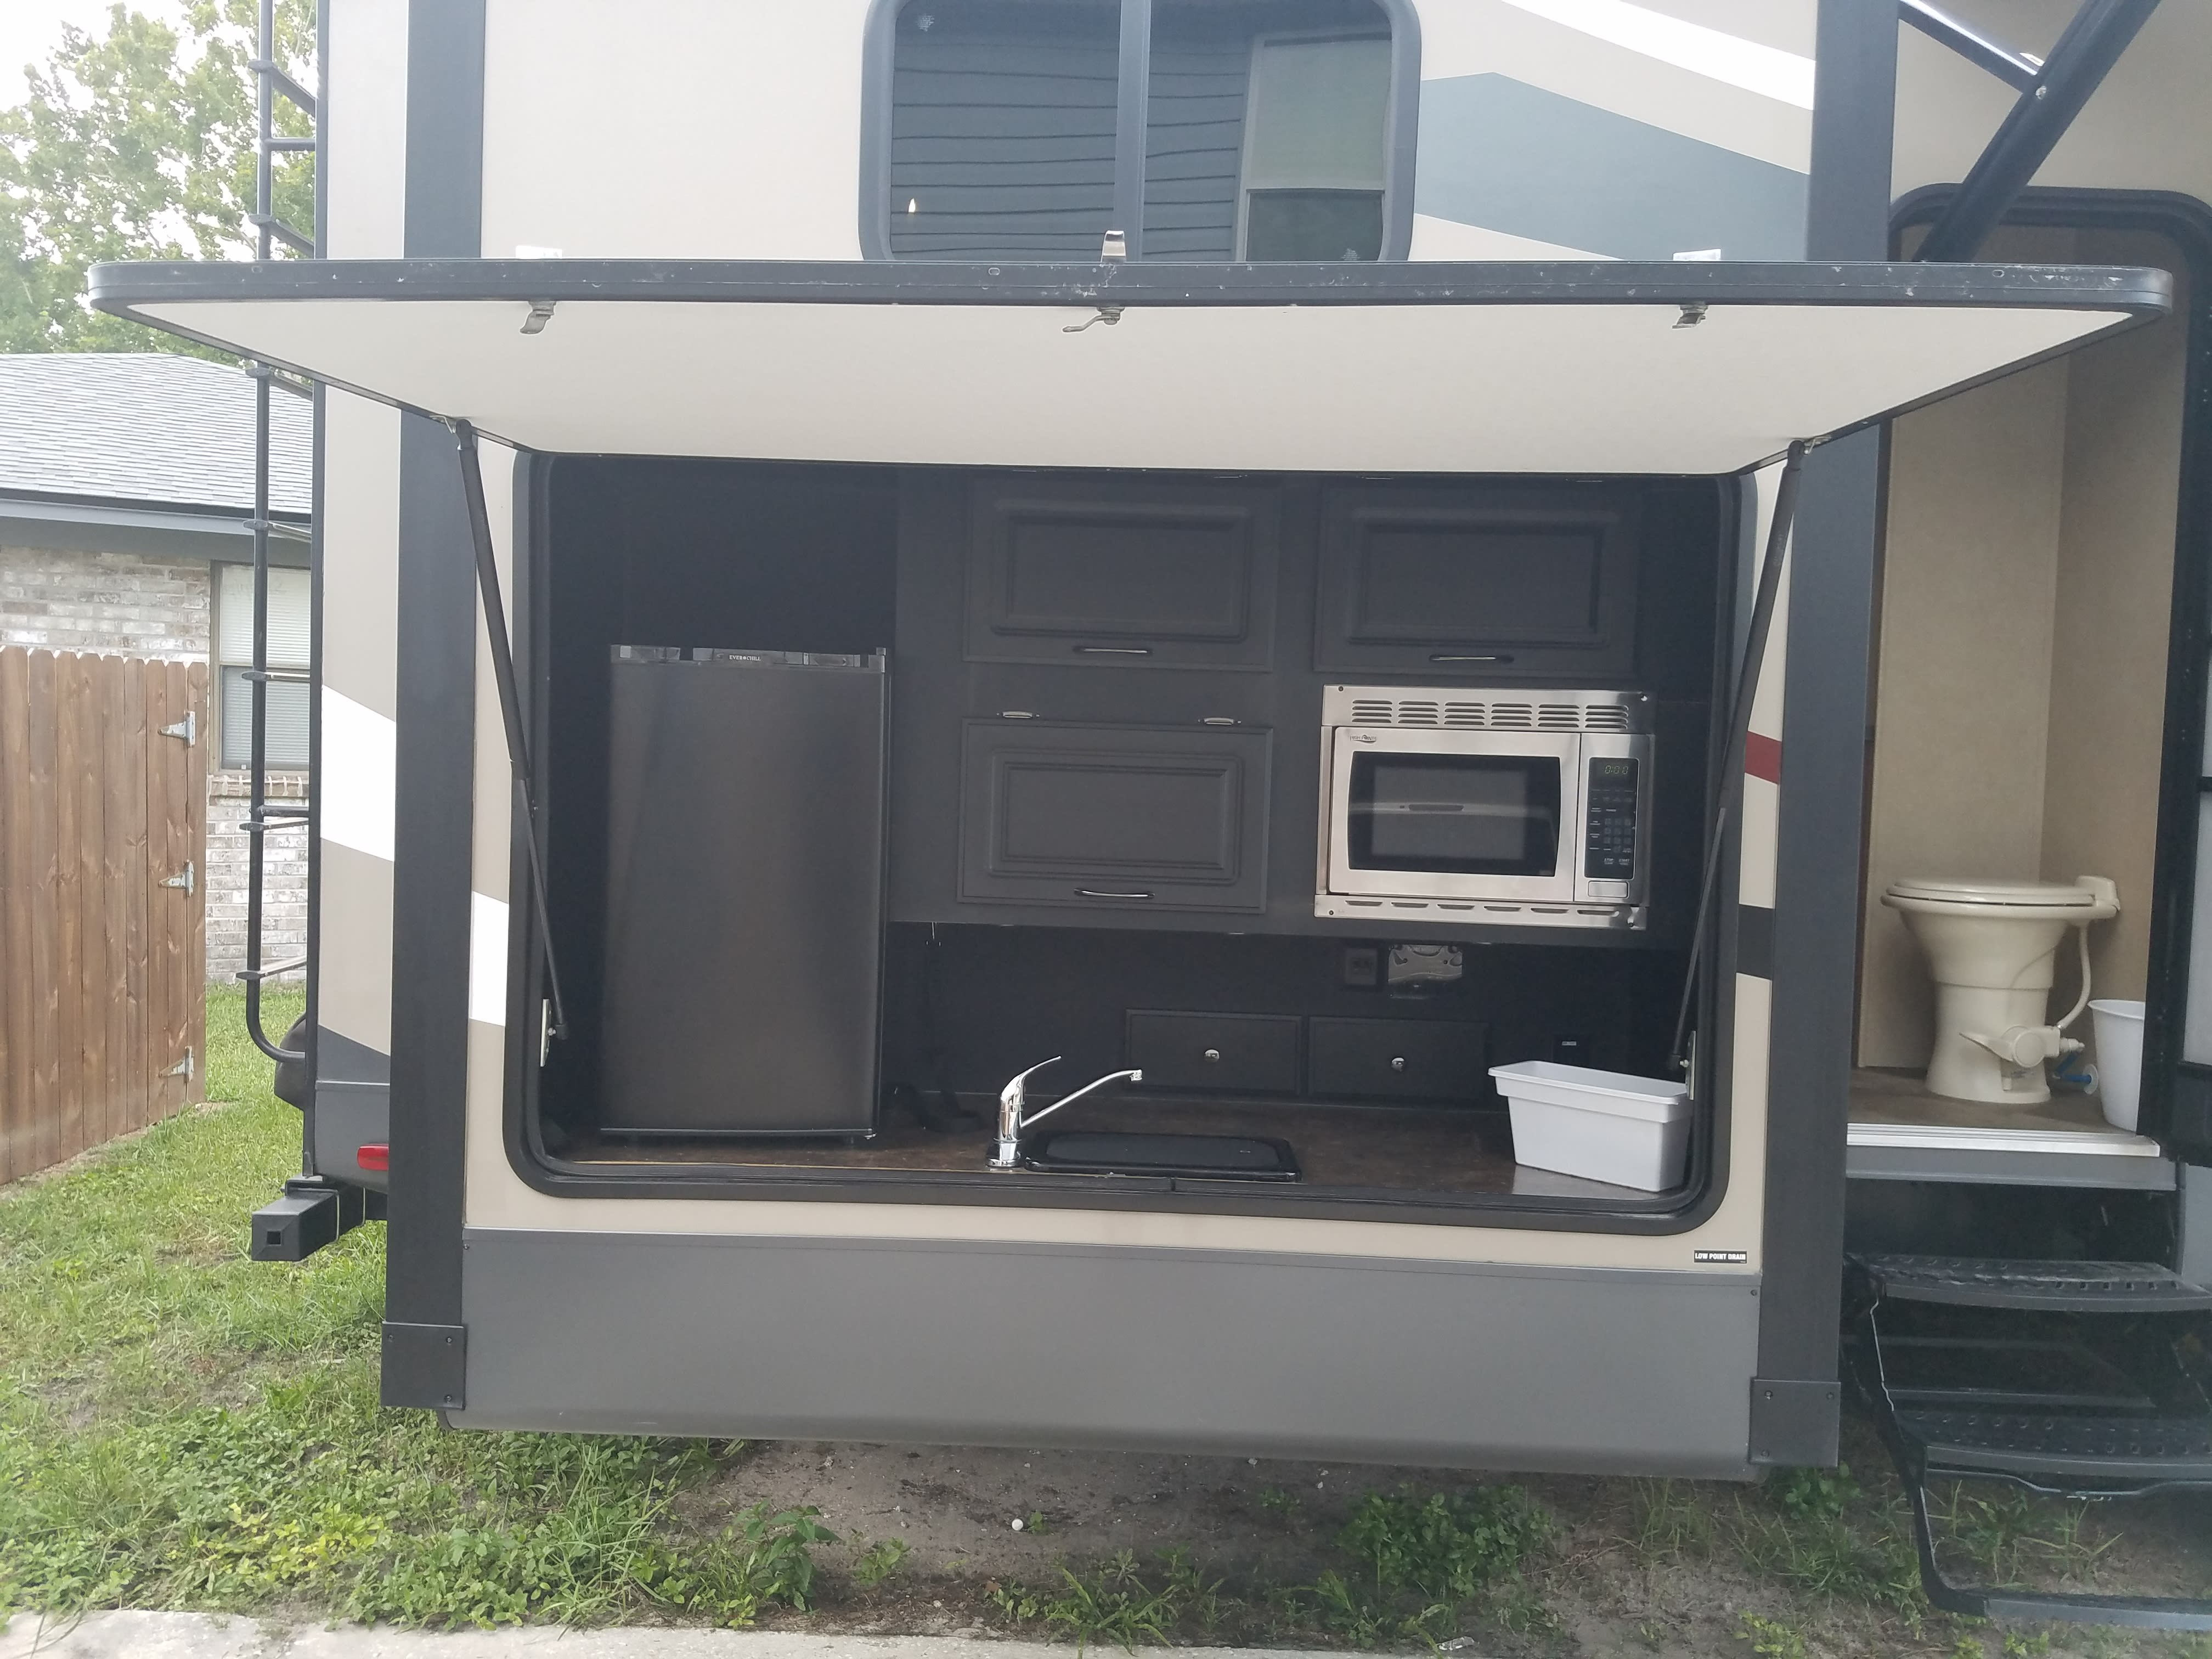 Out door kitchen with fridge, microwave, sink and propane grill. Forest River Sandpiper 2016